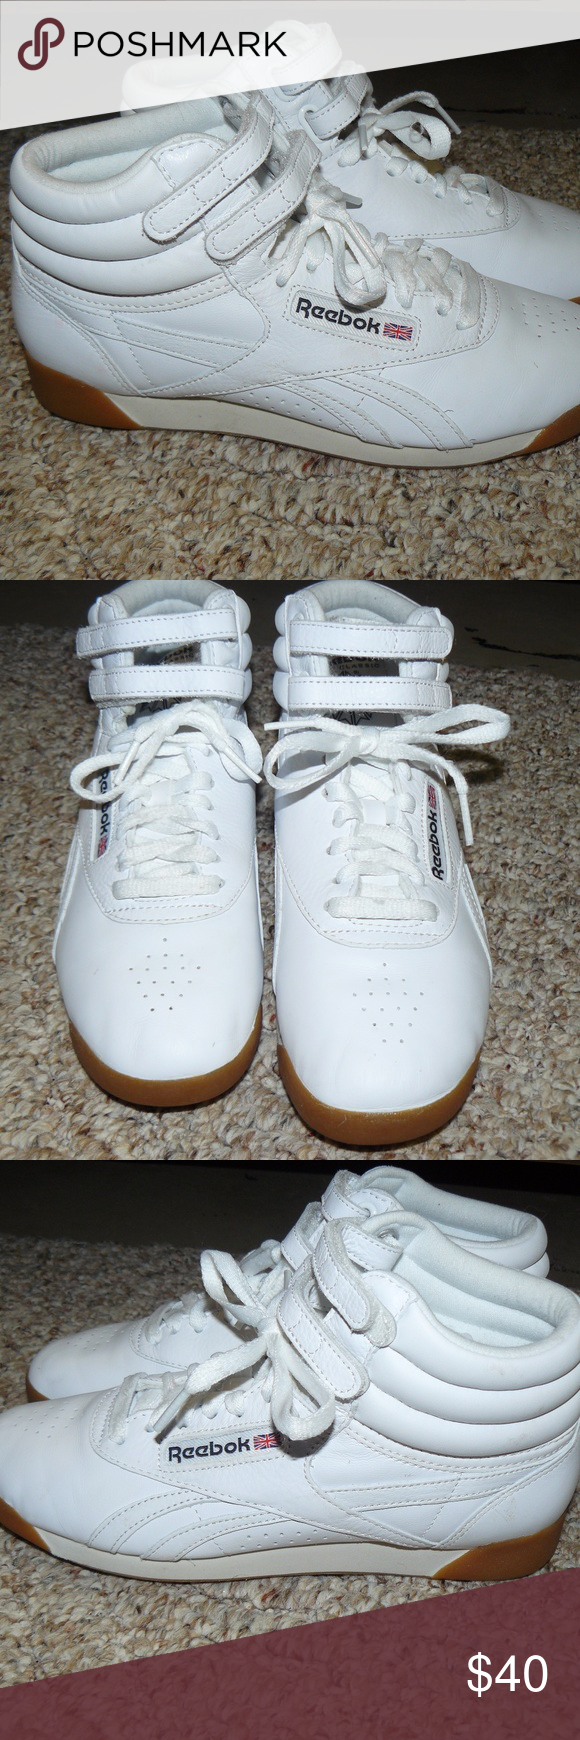 NWOB Reebok Classic Leather High Tops Sz 7.5 2de660f66